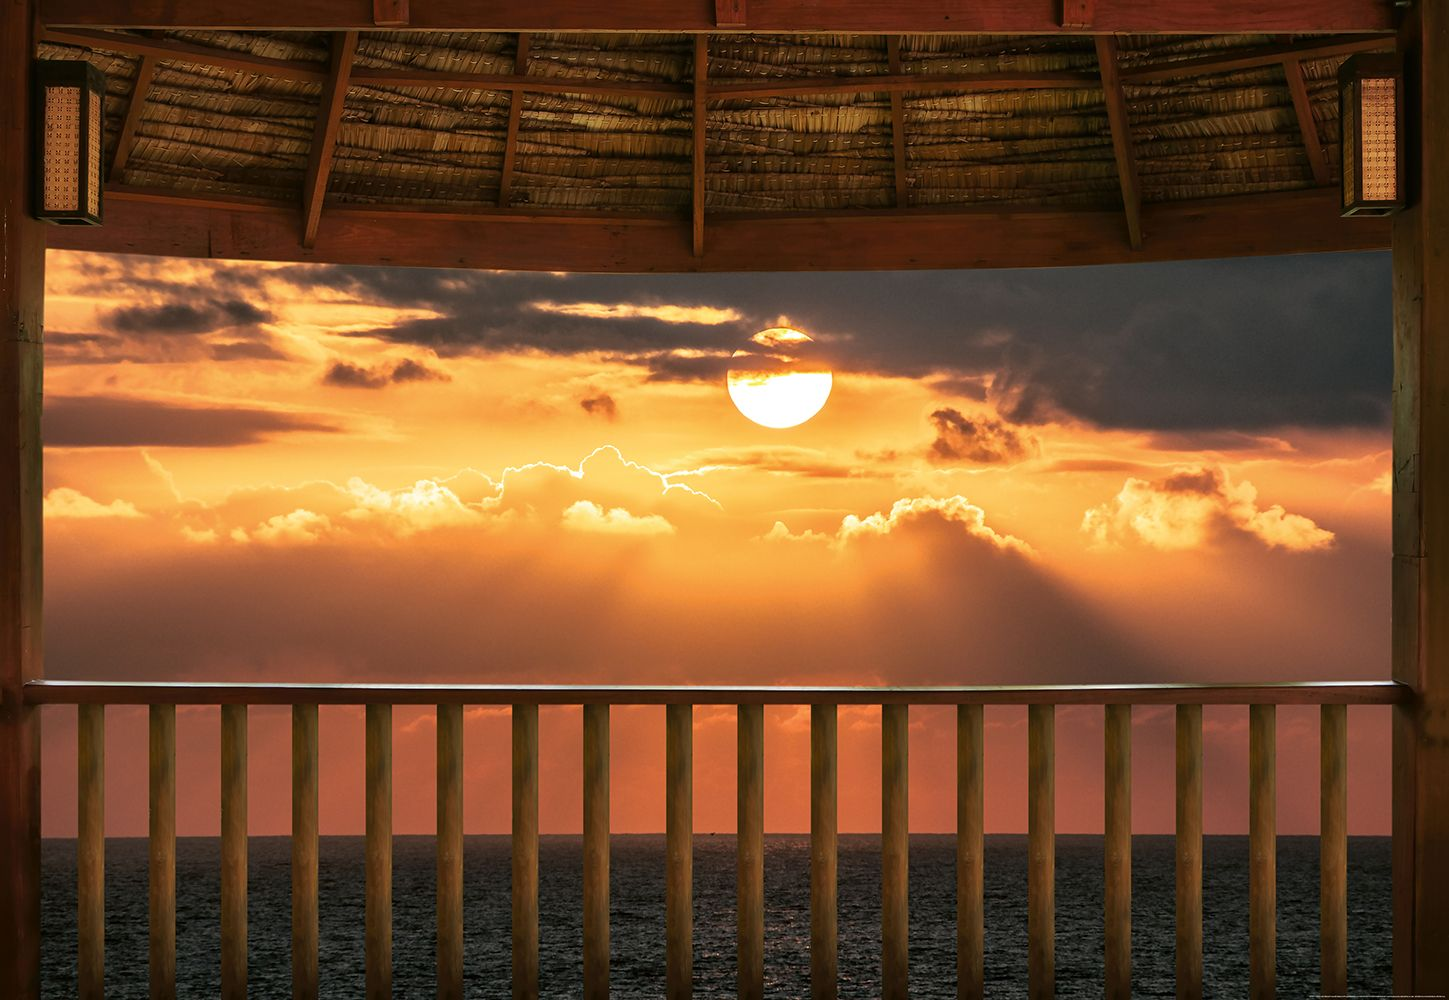 Valokuvatapetti Idealdecor Digital Ocean View Terrace At Sunset 4-osaa 5179-4V-1 254x368 cm